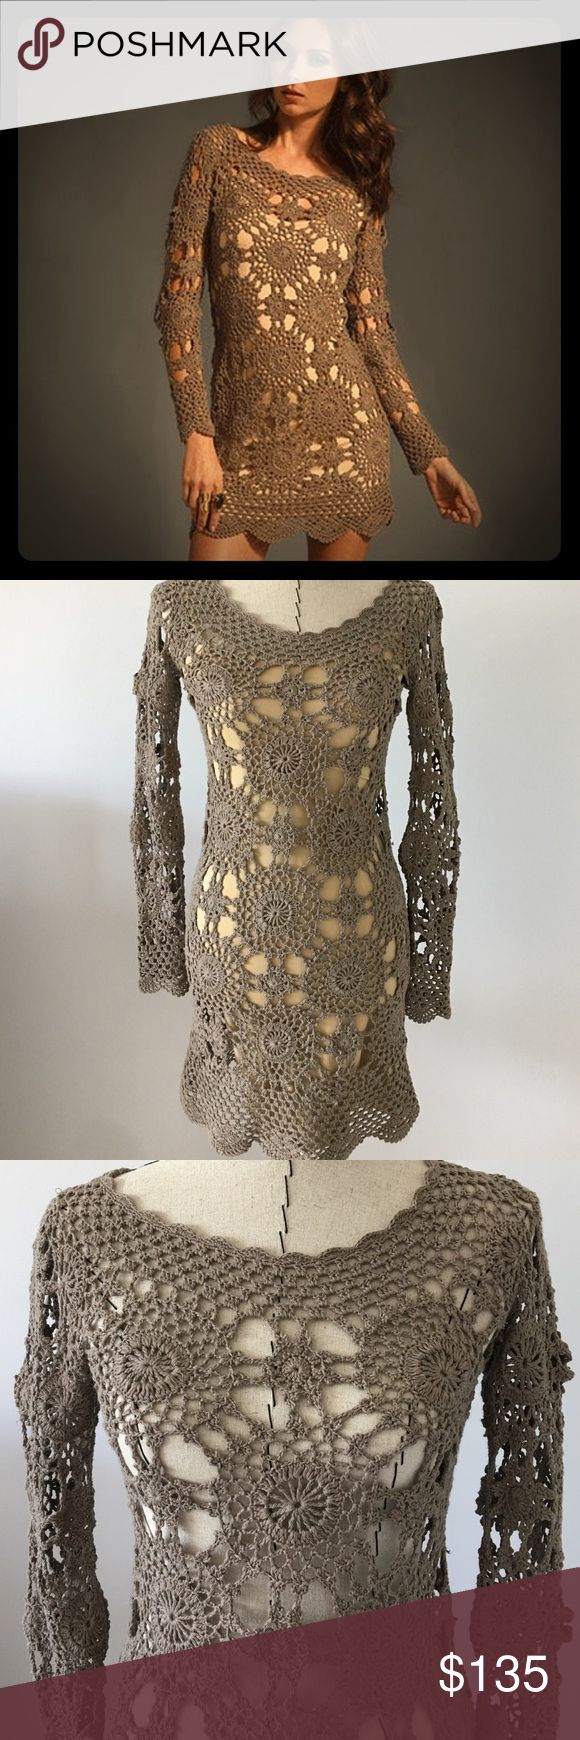 """Crochet dress Taupe crochet dress is by Eternal Sunshine Creations.  Bought in upscale boutique.  Petite/small.  I am 5'6"""" and a size 2-4 and it fits great!  Shown in first picture with nude slip (not included but easy to find).  Price is for crochet dress only.  Never worn.  Versatile for a vacation, at the beach or with a tank and leggings.  Length is 31.5"""".                            ♥️No trades.                                                  ♥️No lowball offers please Eternal Sunshine…"""